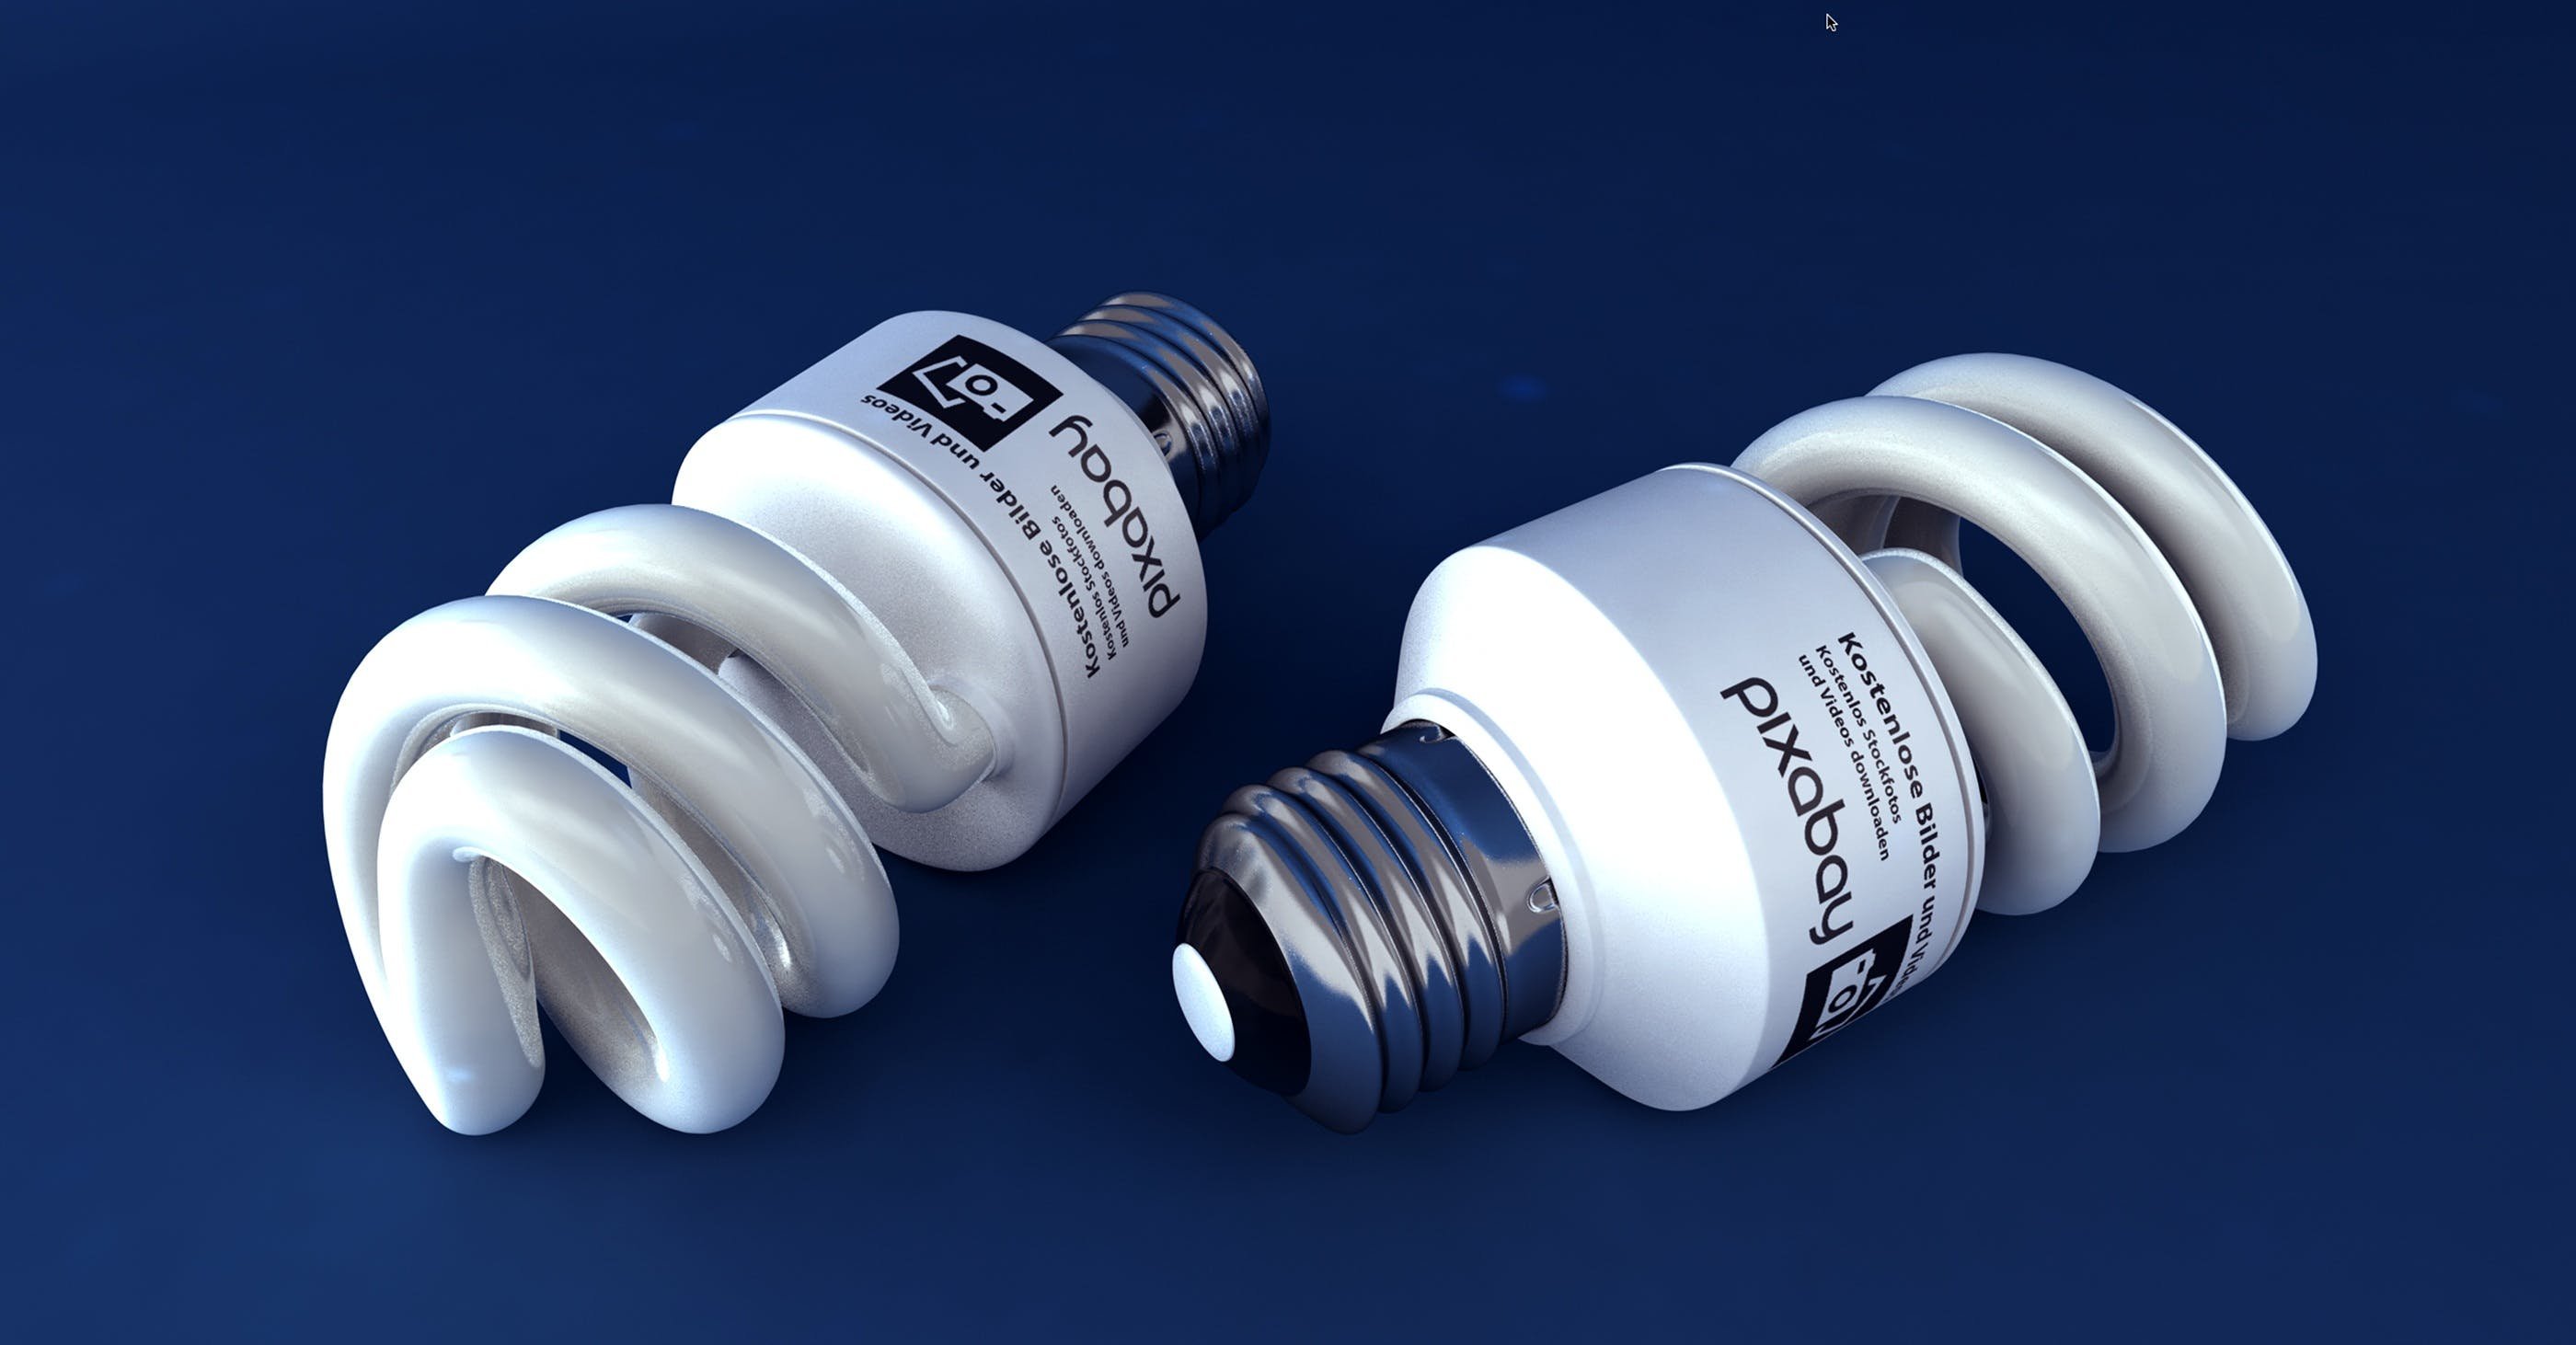 Two White Cfl Light Bulbs